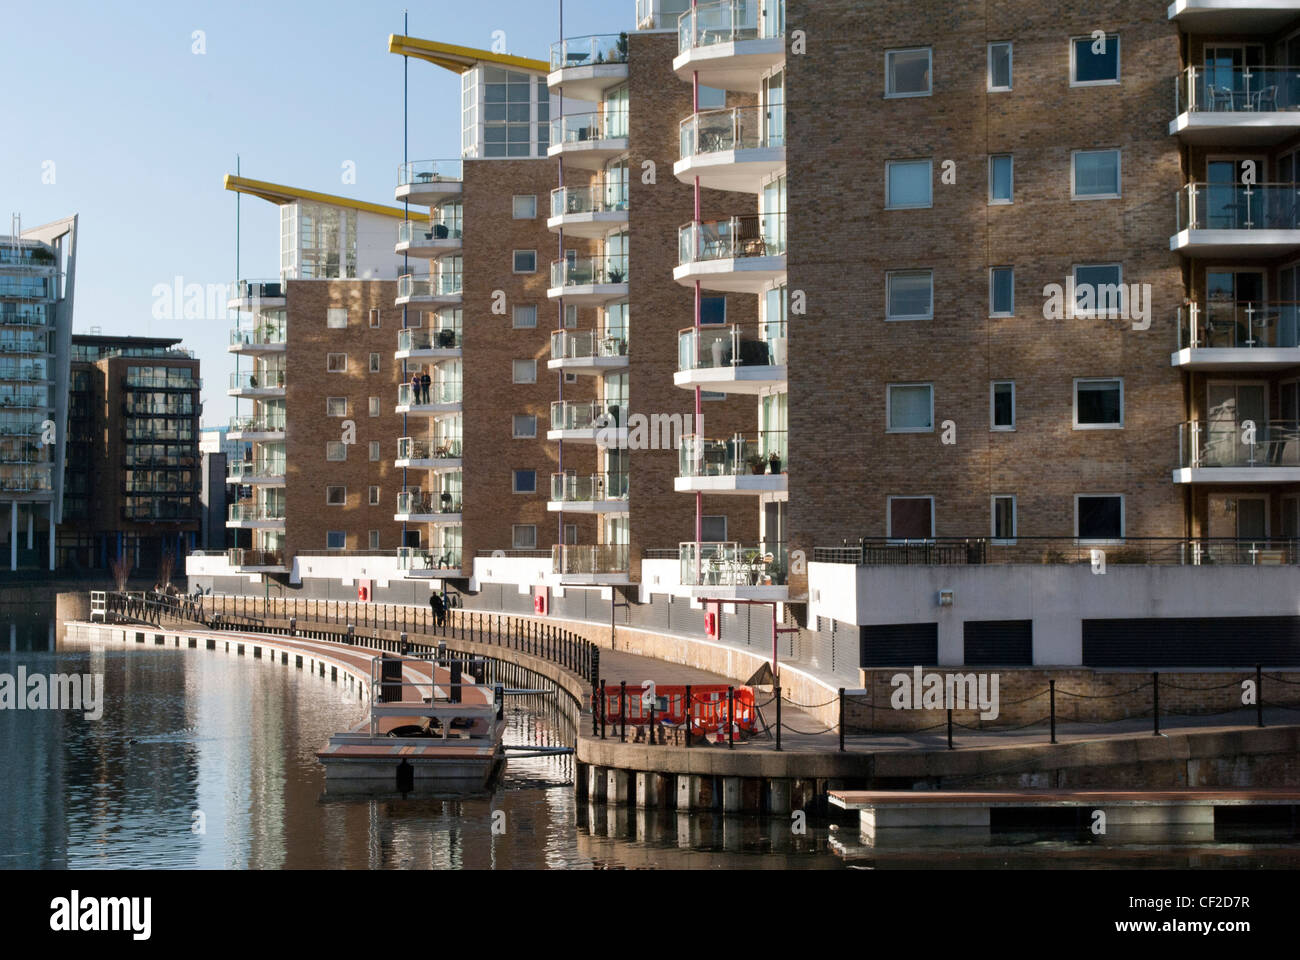 Limehouse Basin Apartments, London Docklands - Stock Image